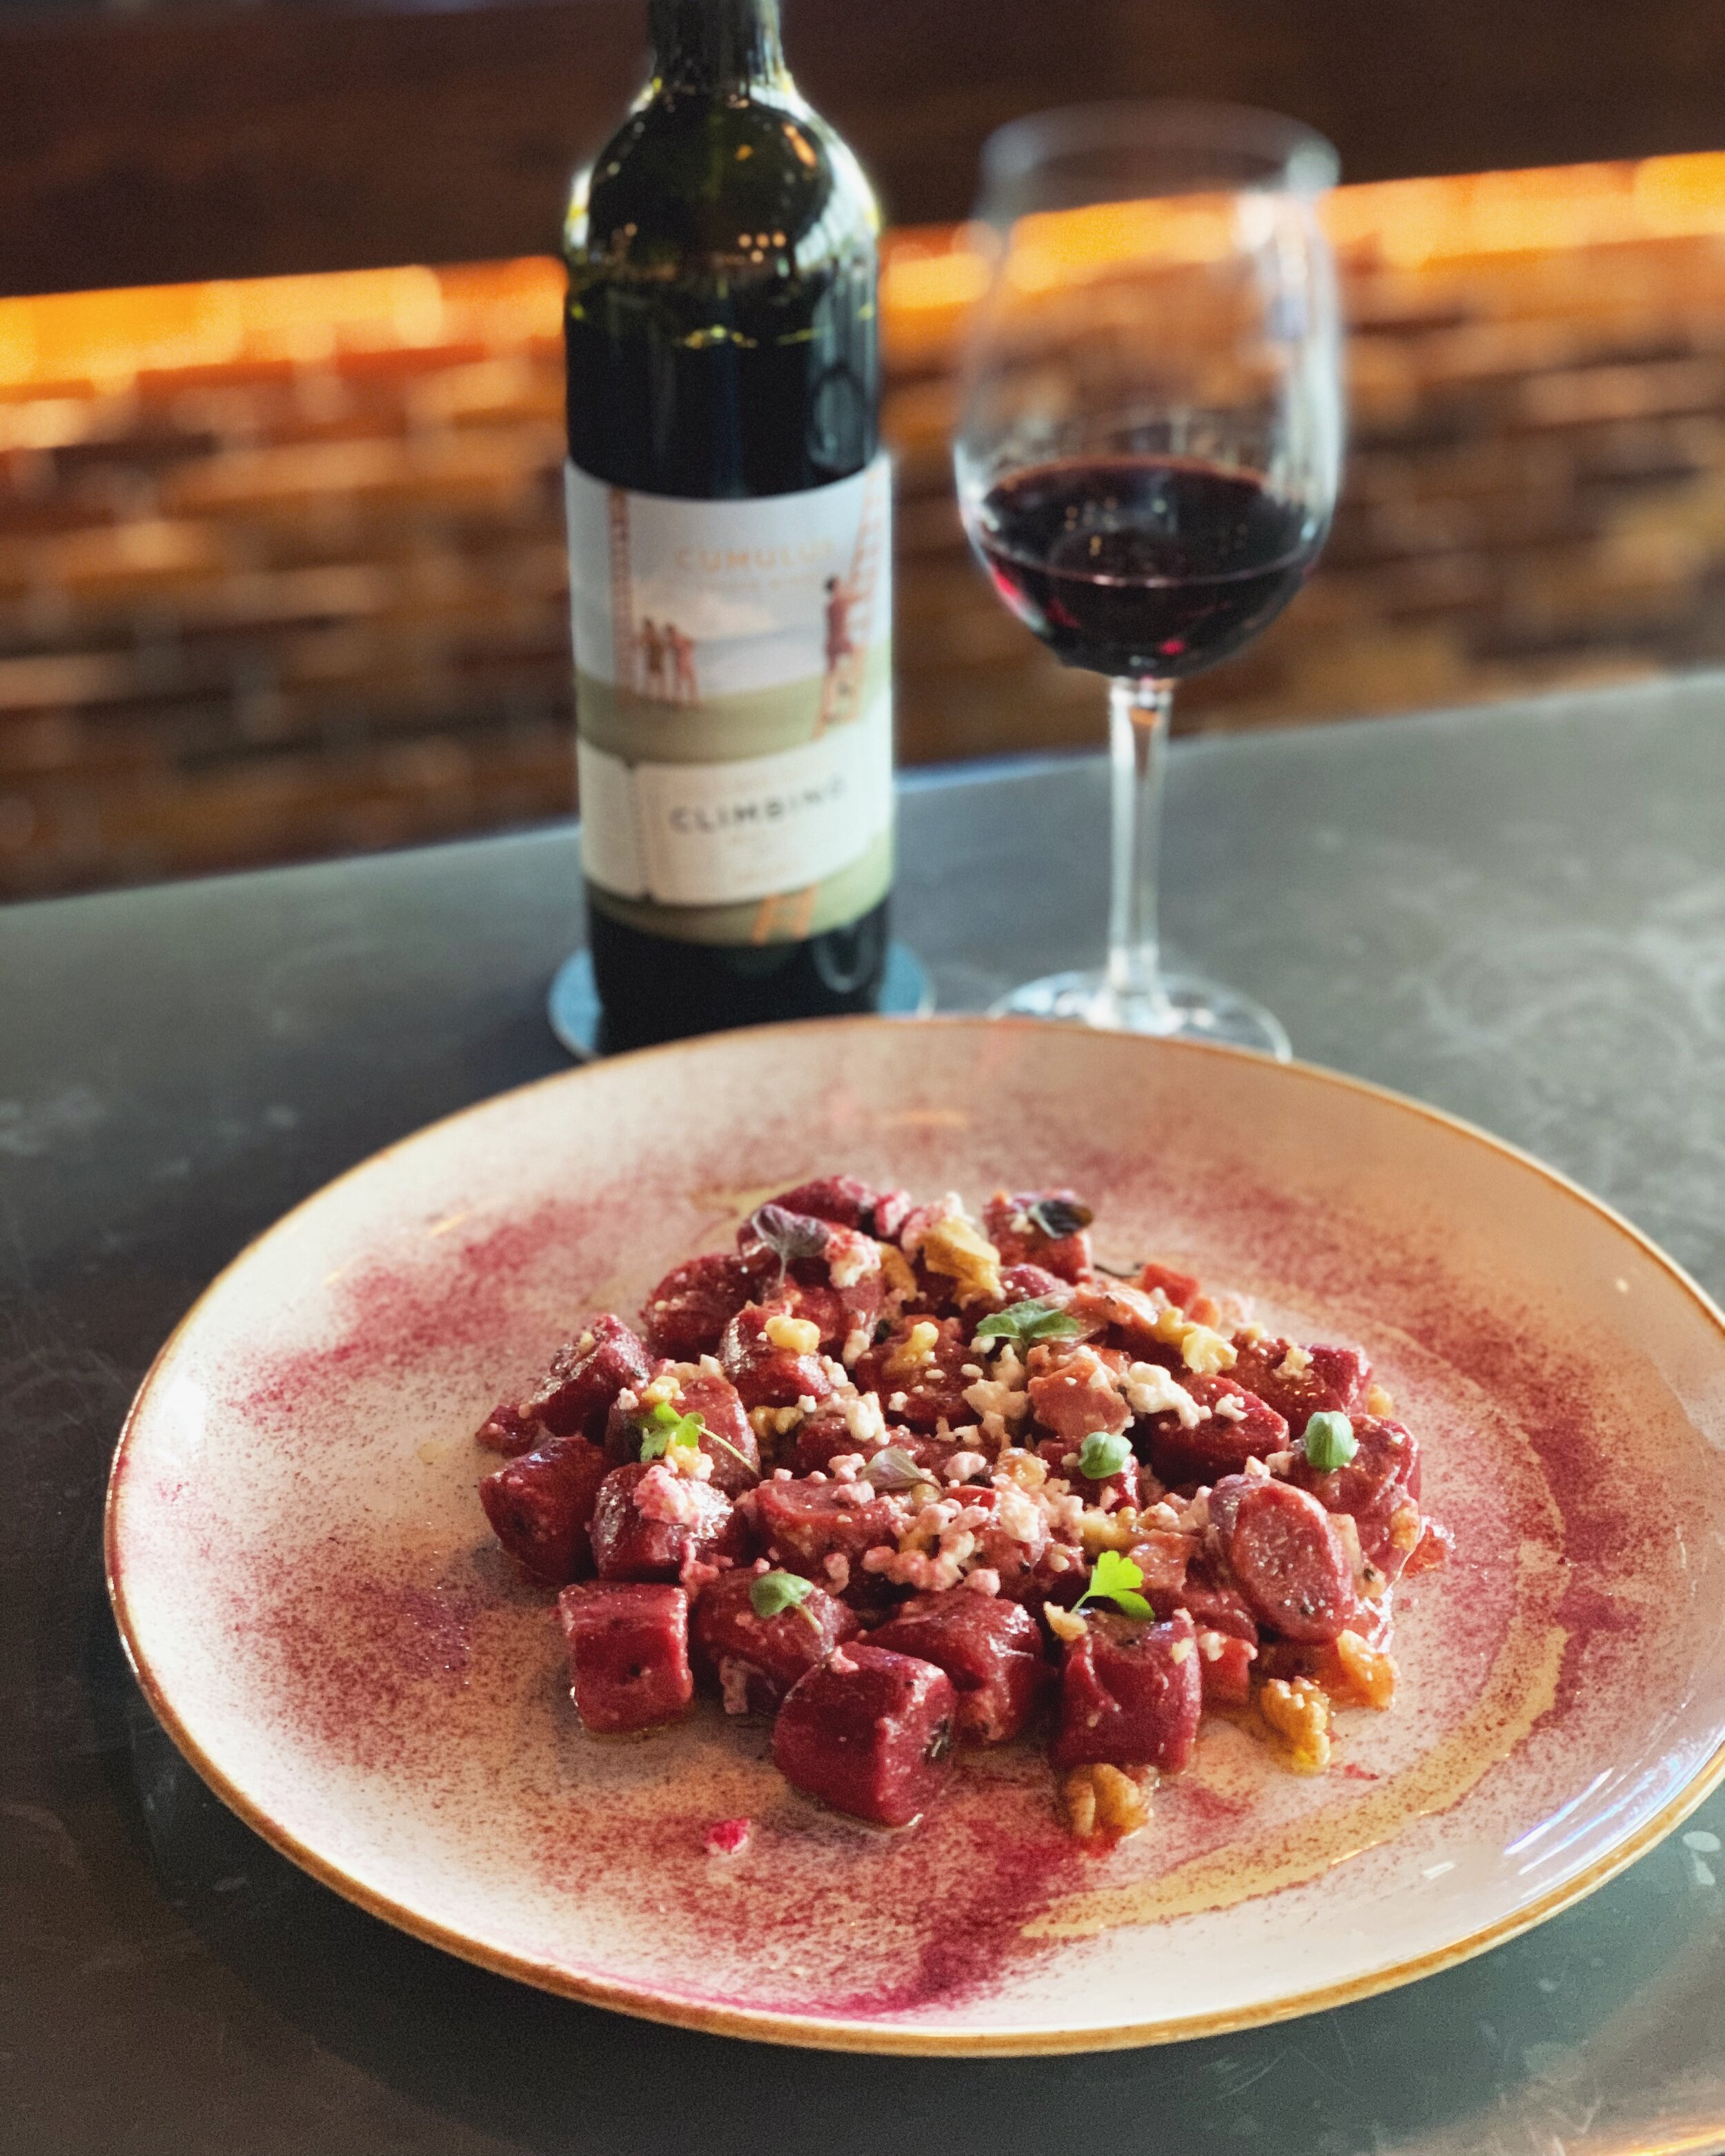 11-17 September - ~ R E D G N O C C H I ~// Beetroot infused, hand cut gnocchi, pancetta, roasted walnuts, goat's cheese and olive oil. //The tang and sweetness of the beetroot marry the saltiness of the goat's cheese and the pancetta - all topped off by roasted walnuts for an extra nutty flavour..Best enjoyed with a glass of merlot, like our 'Climbing' Merlot, from Orange NSW.